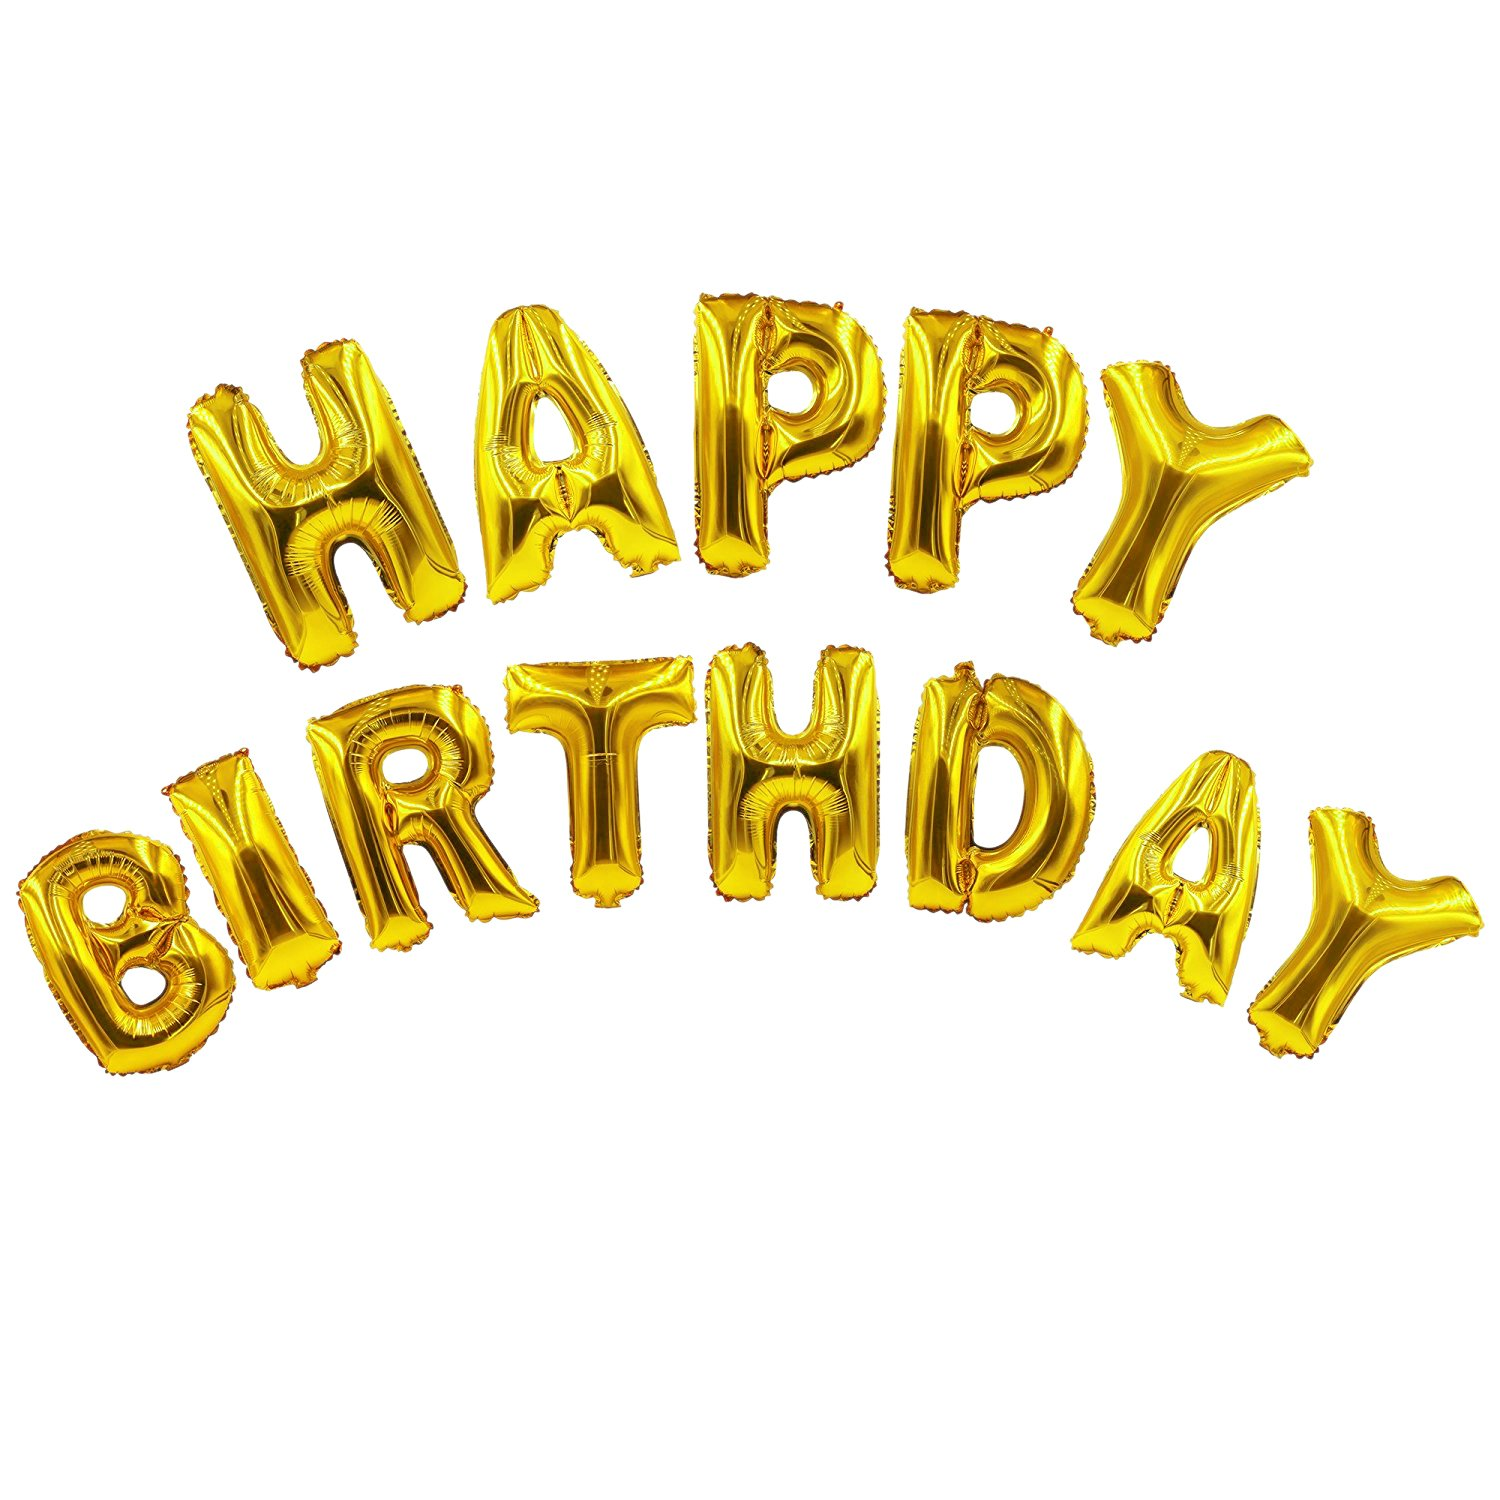 Amazon.com: Emivery Happy Birthday Balloons Banner, Letter Alphabet ...